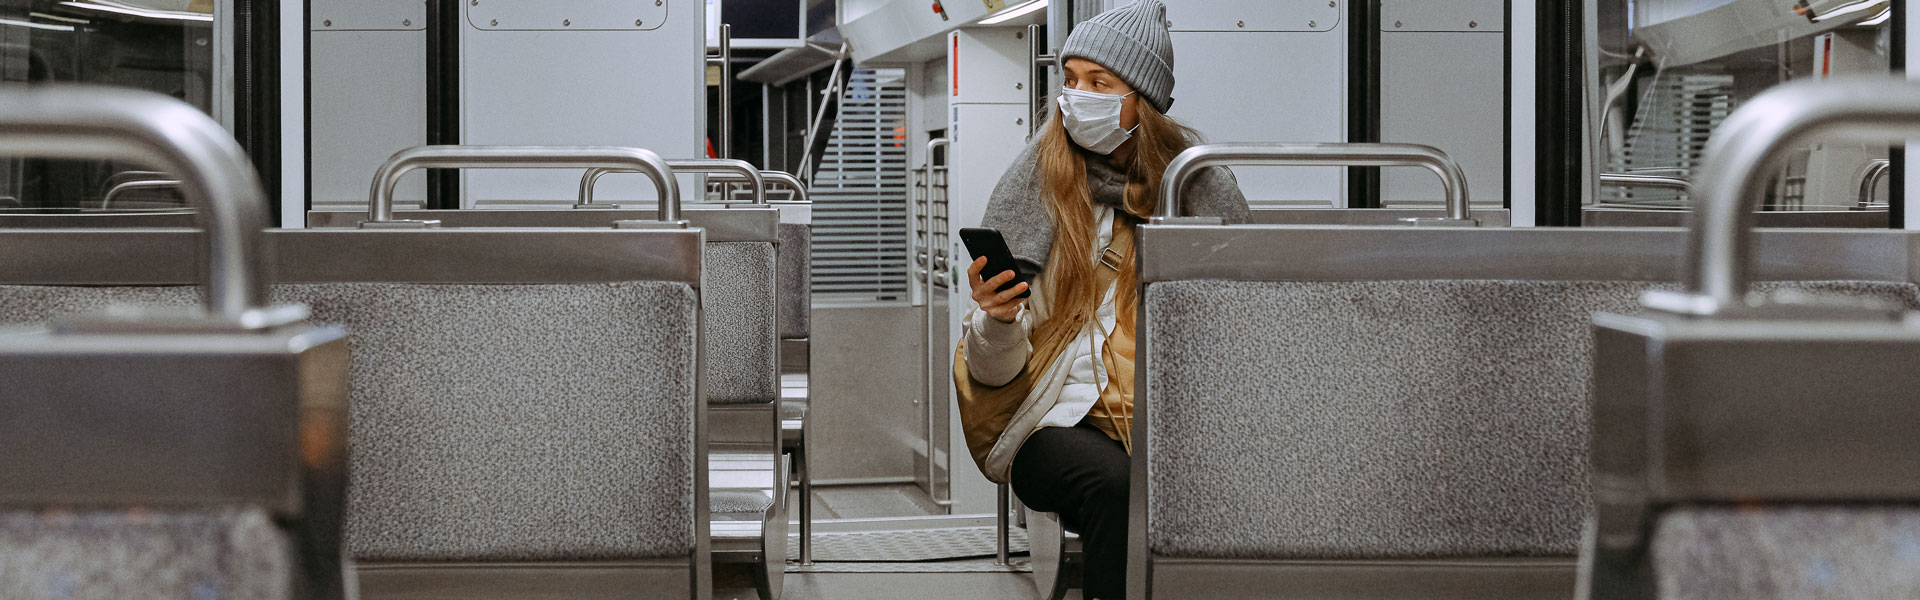 Woman wearing mask on a train